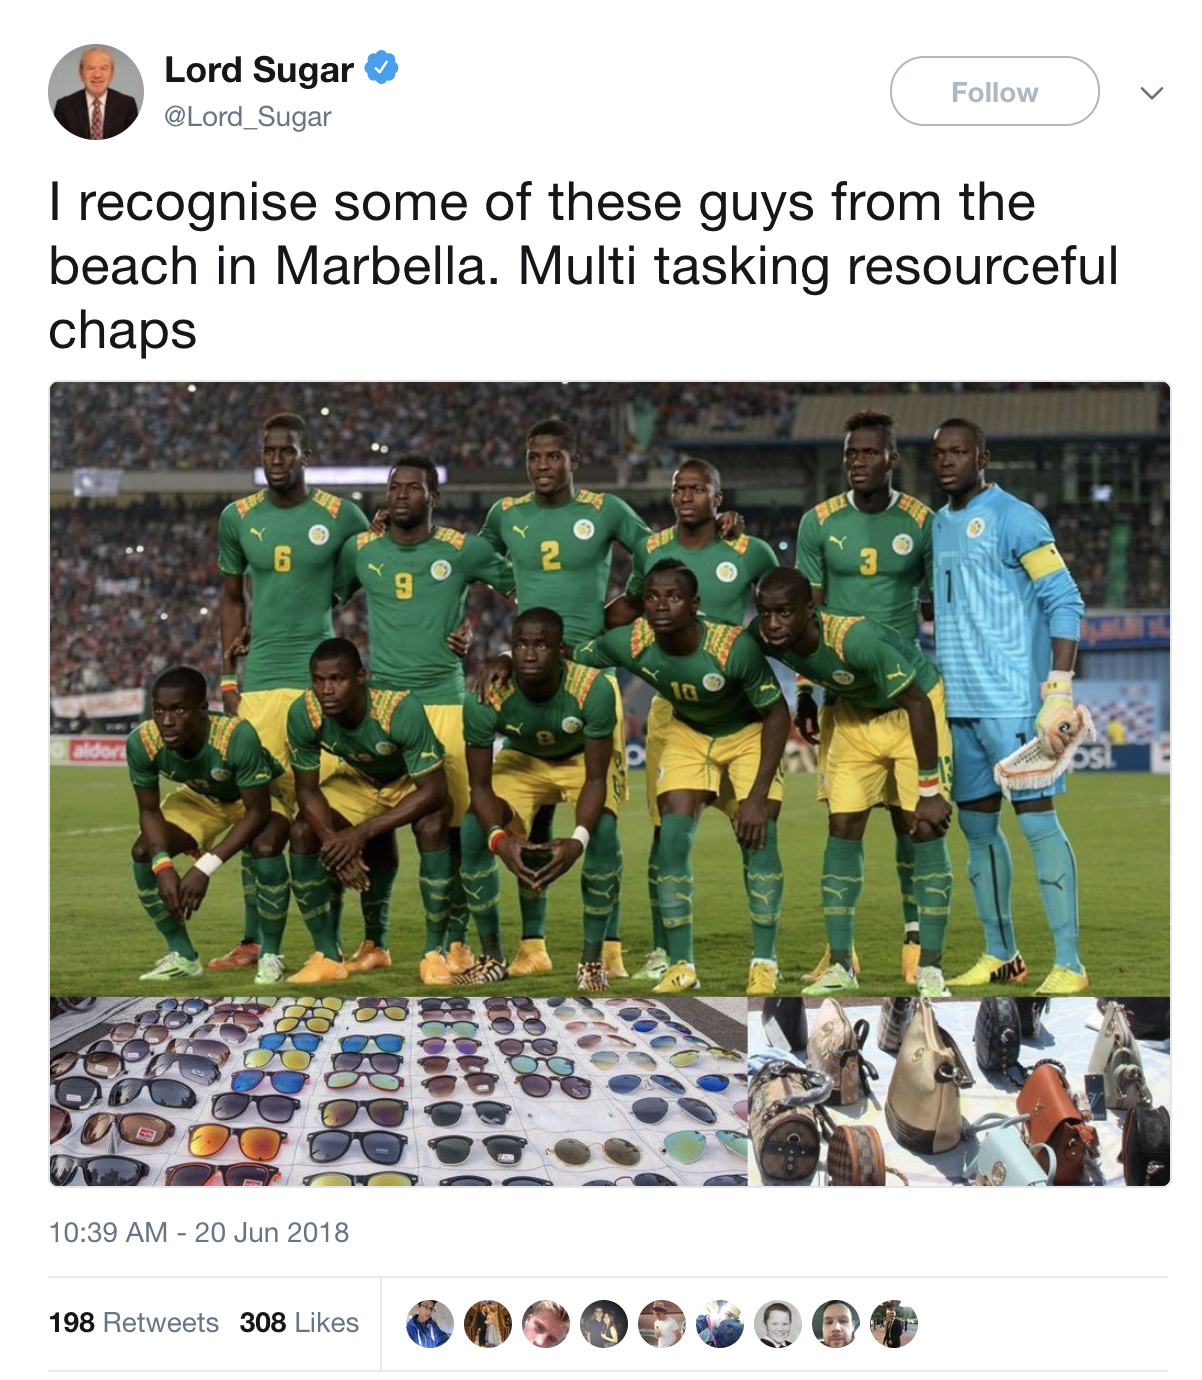 Lord Sugar apologises for 'racist' tweet about Senegal football team